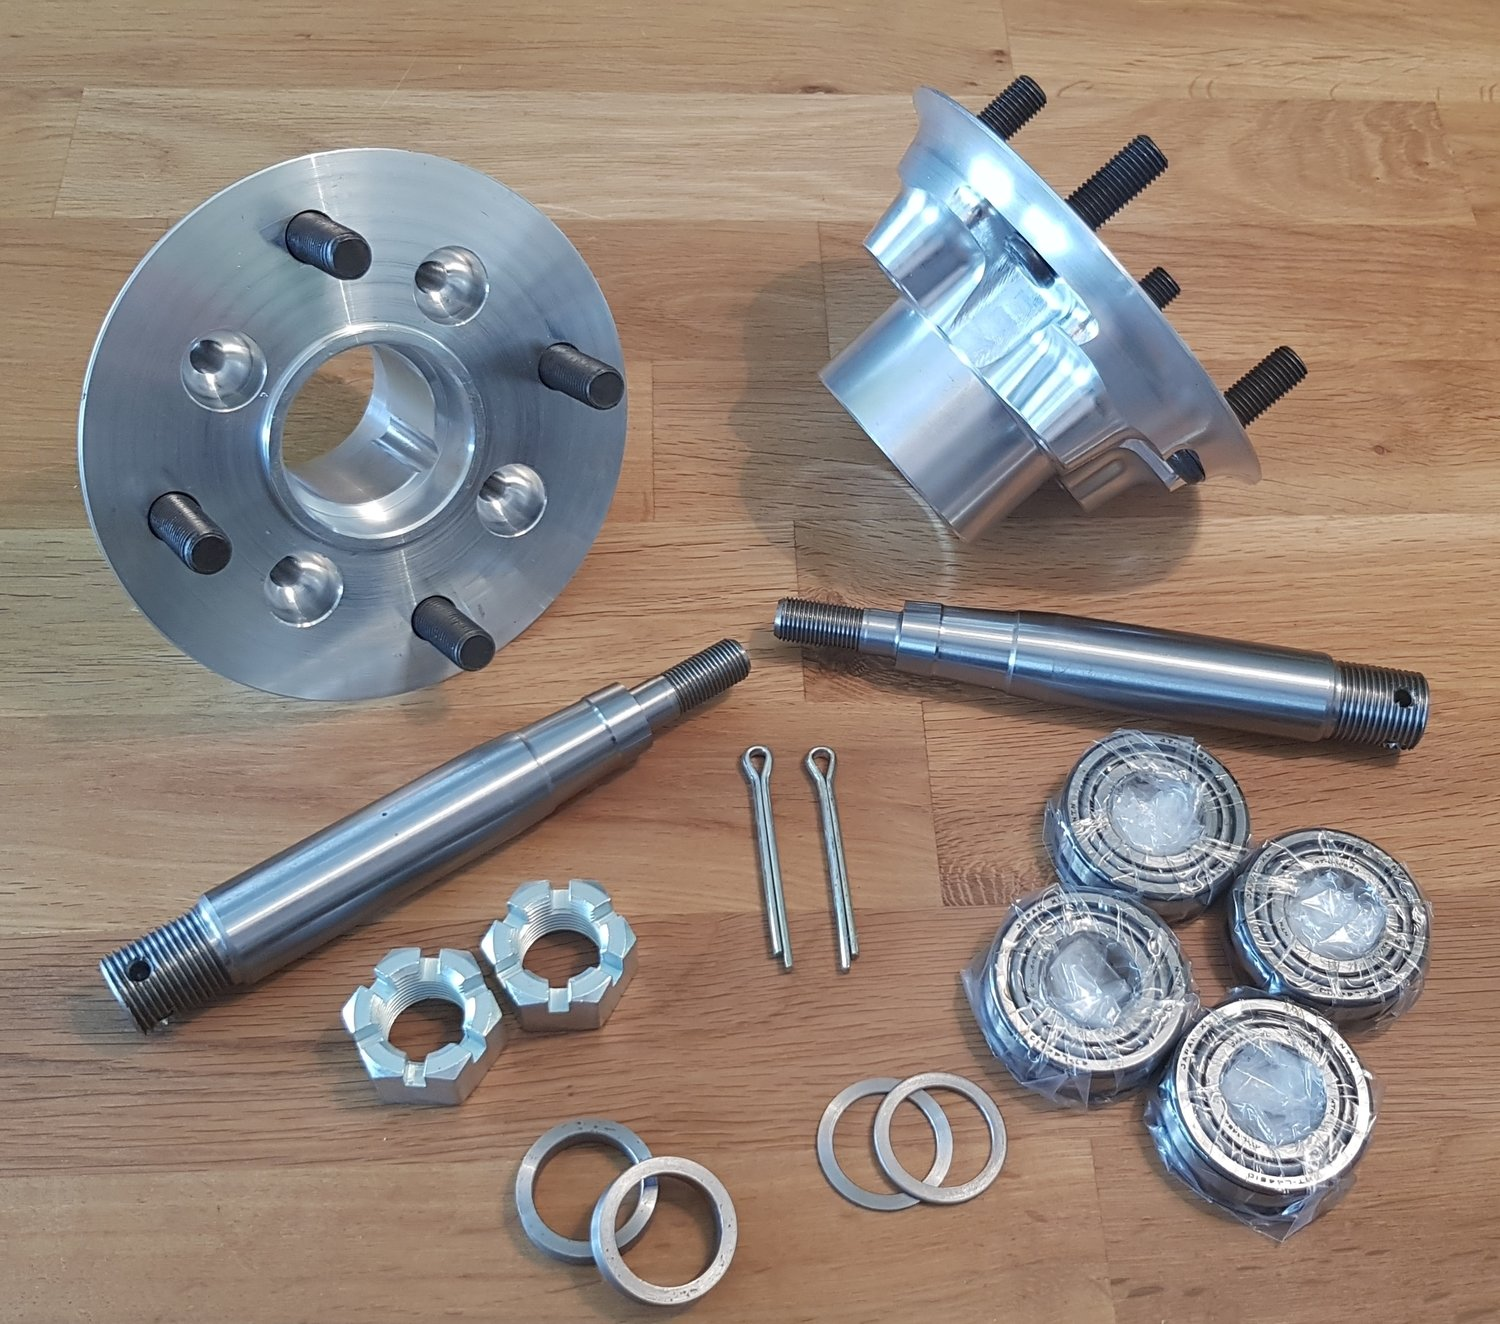 Caterham Forged Aluminium Hub and Stub Axle Upgrade.